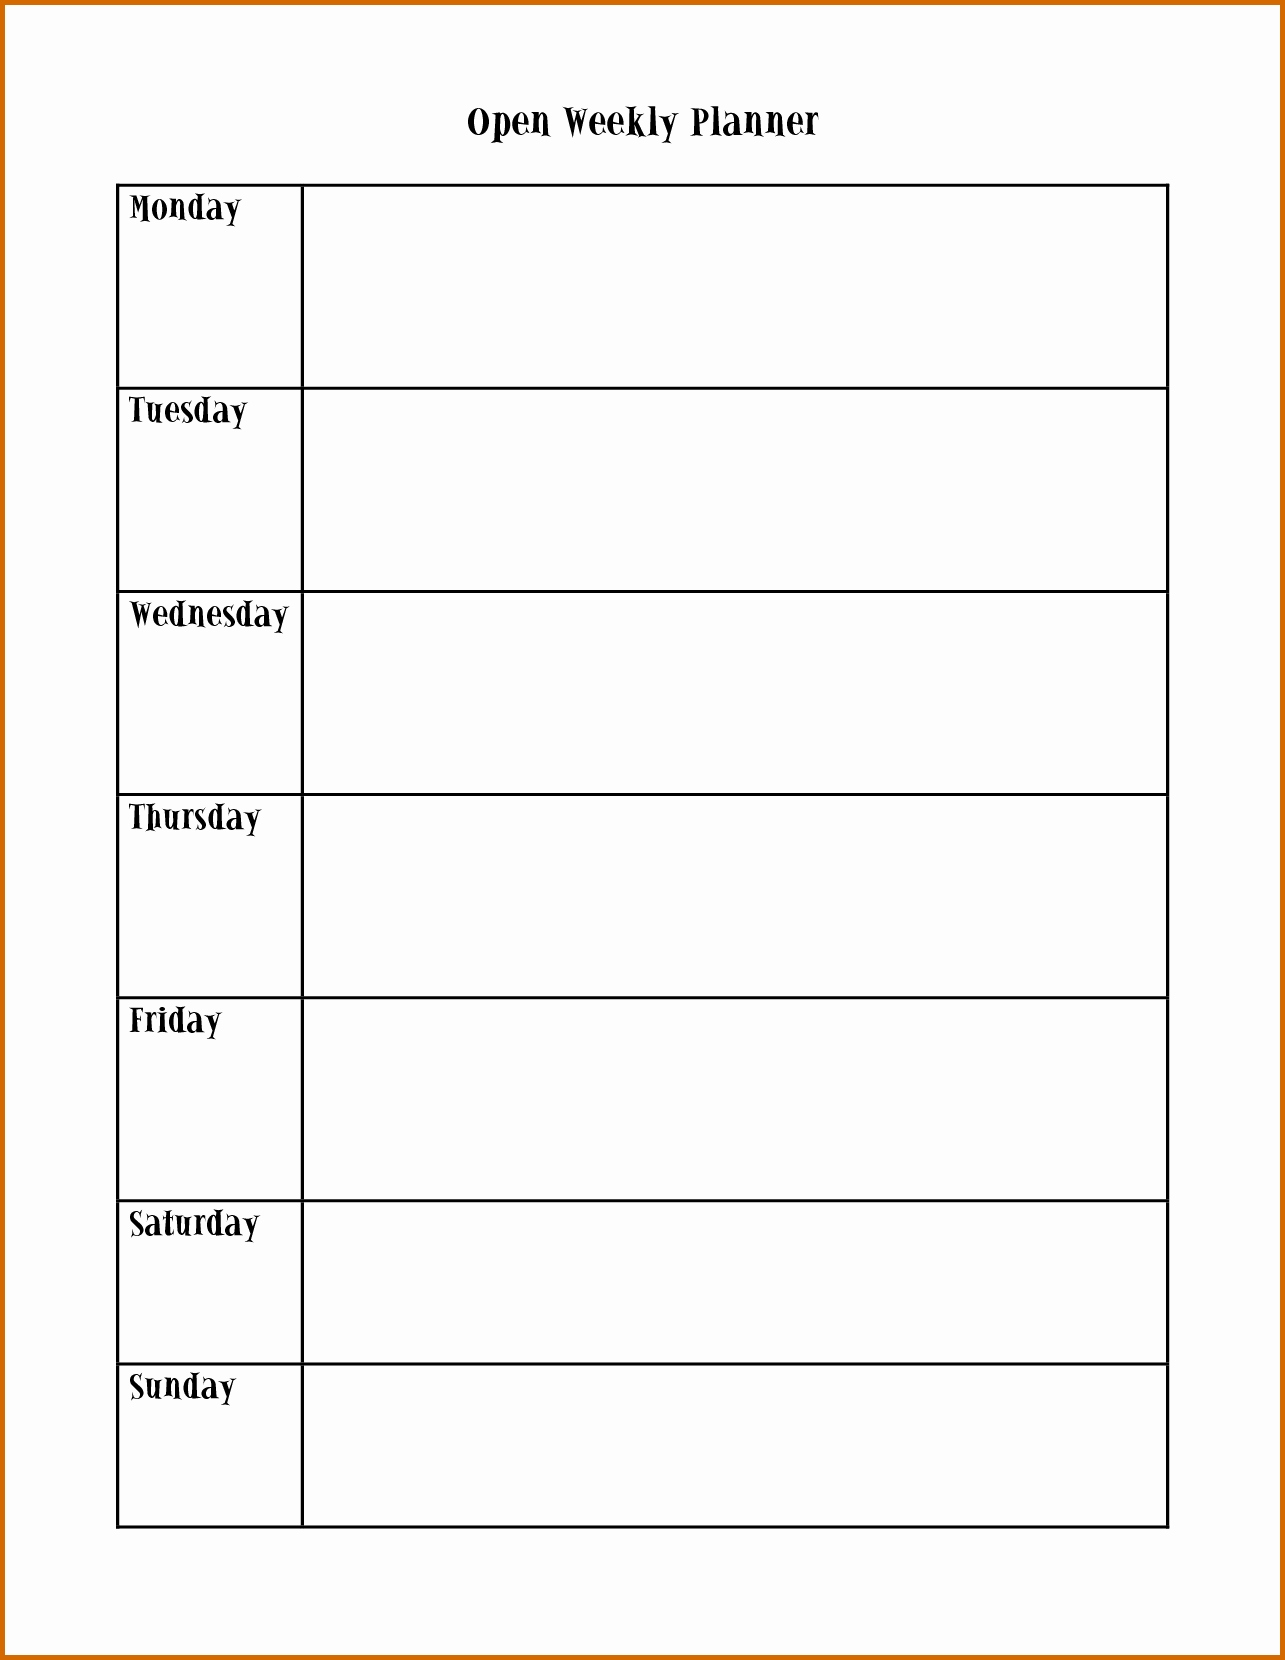 Schedule Plate Monday Through Friday Weekly Calendar Word | Smorad within Monday - Friday Planner Template